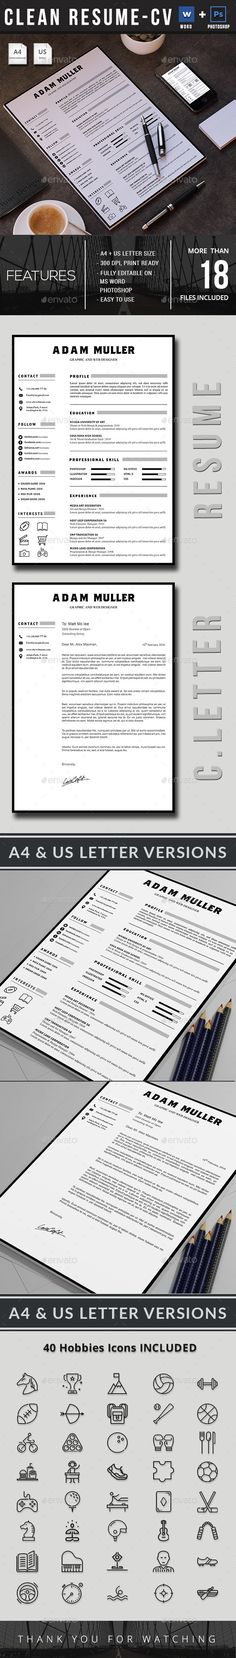 Just Resume Font logo, Fonts and Logos - fonts to use on resume